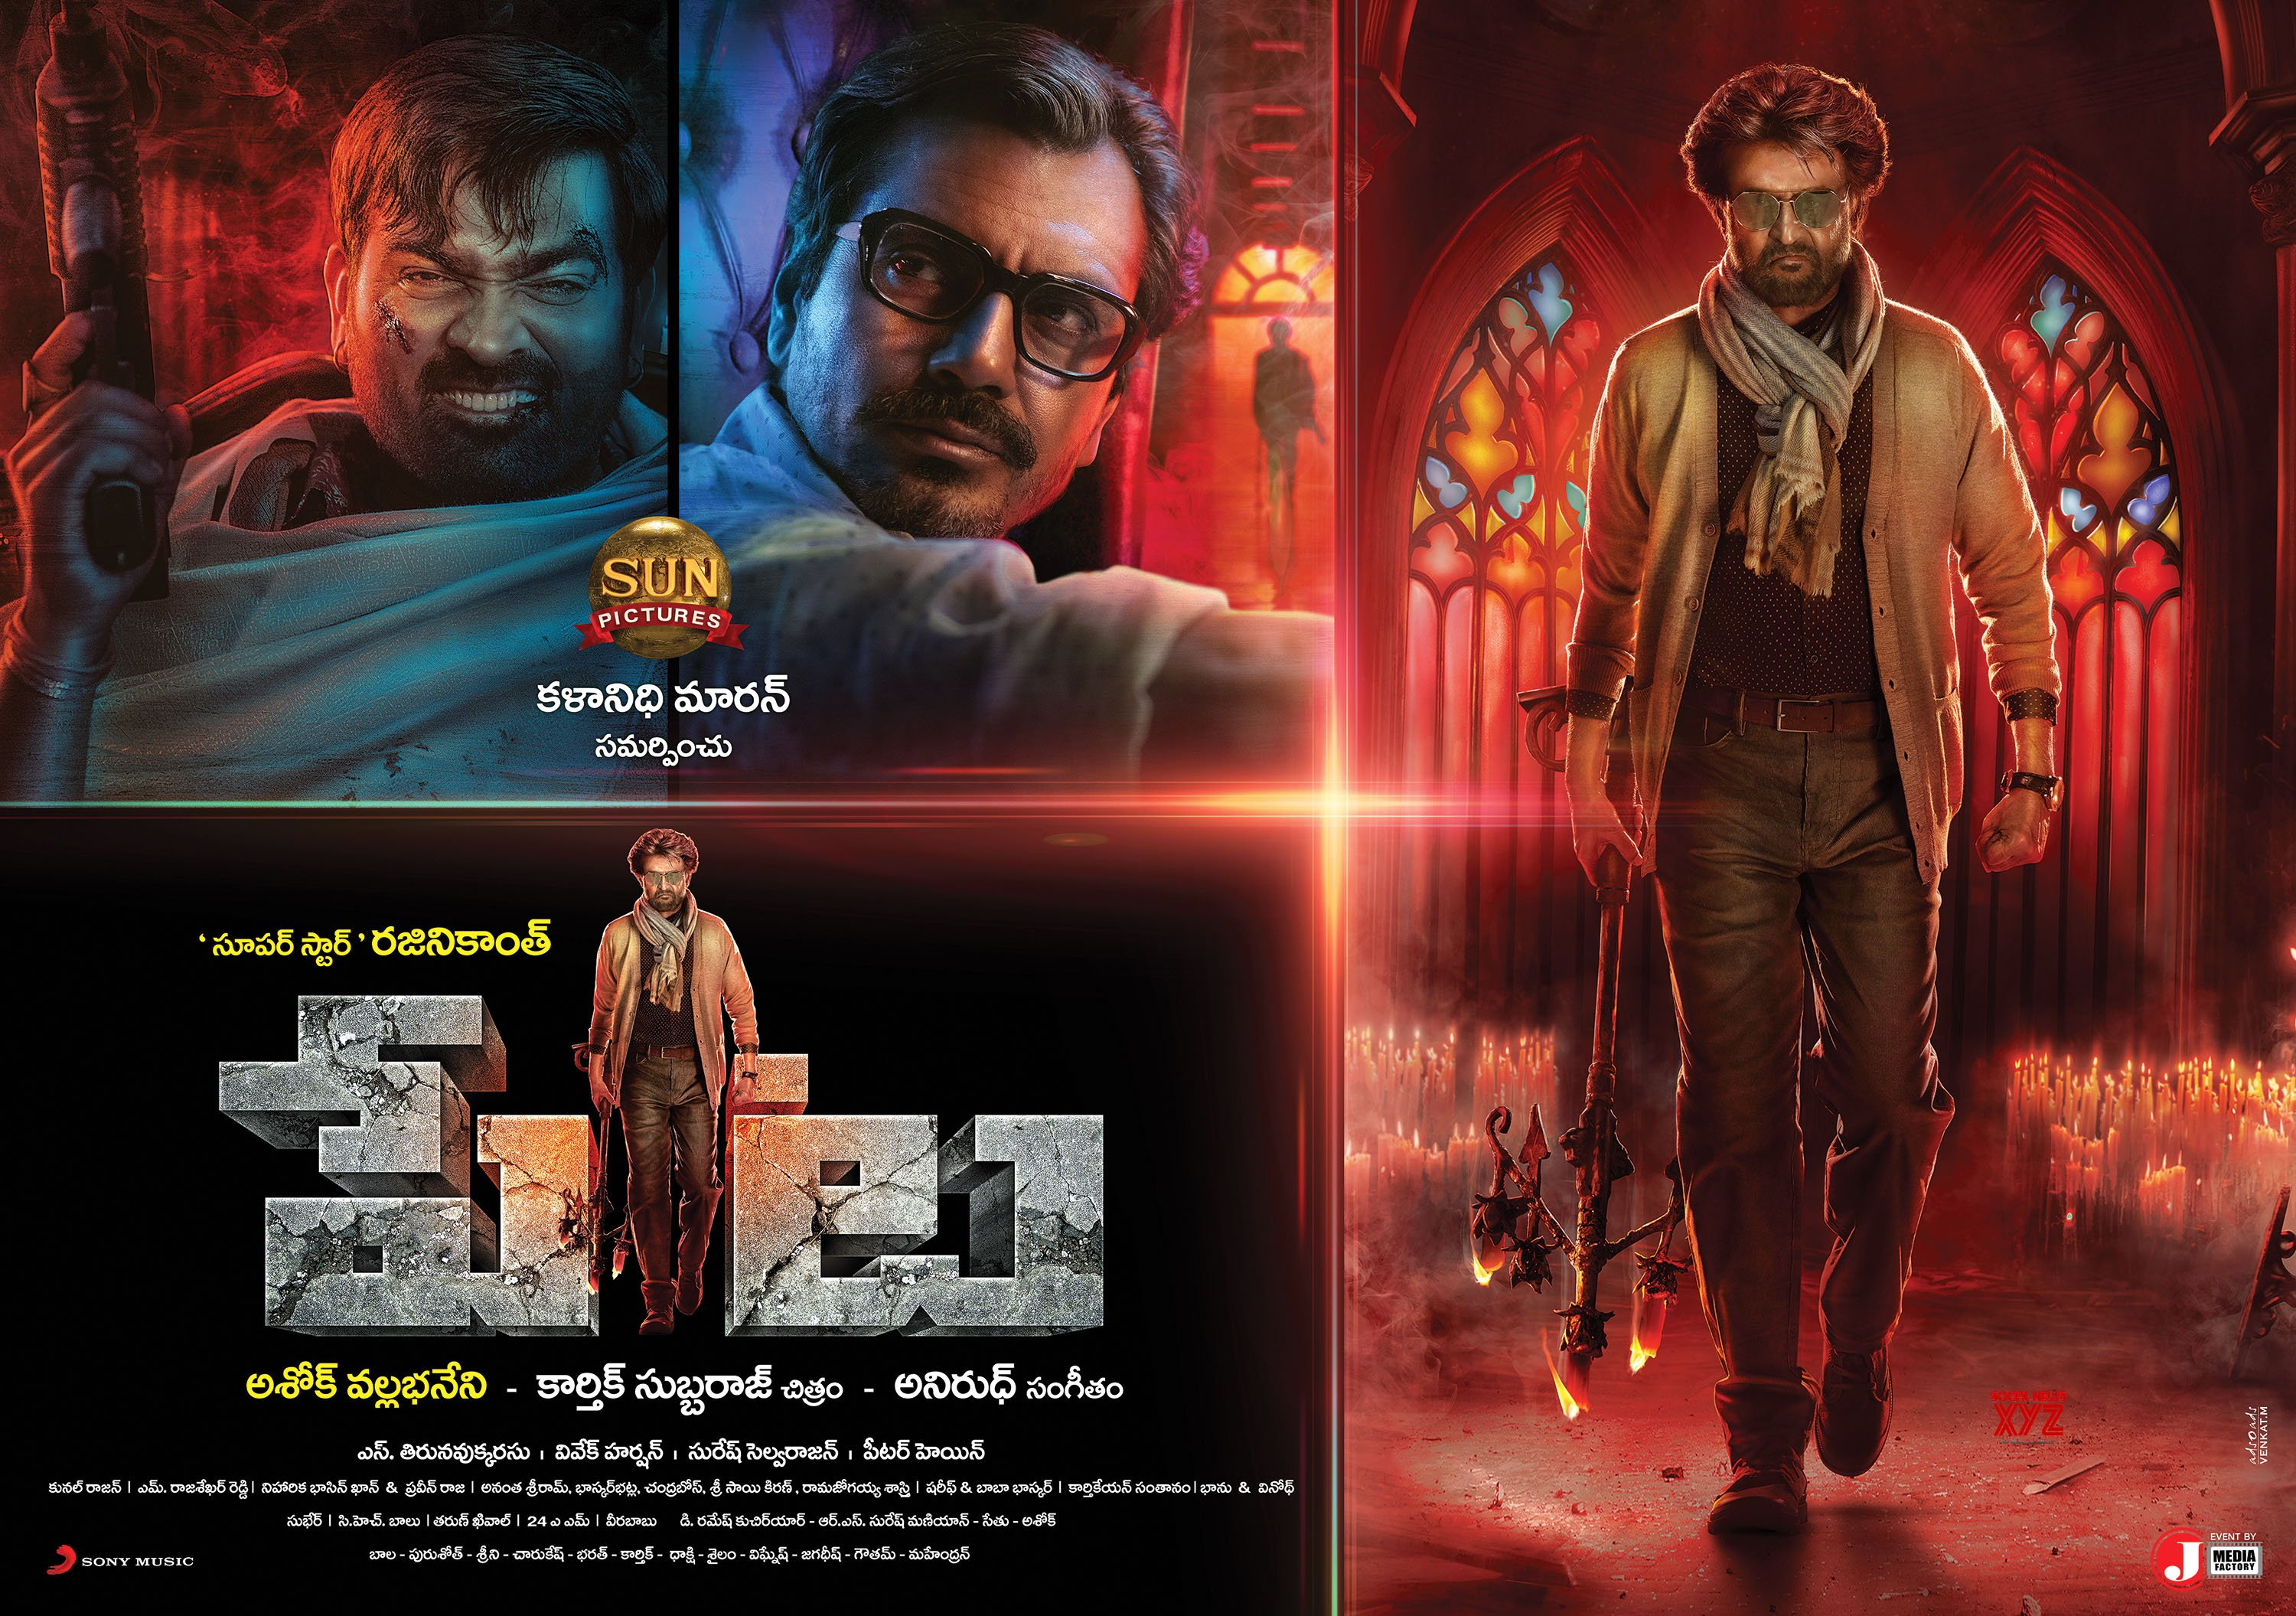 petta-movie-superstar-rajinikanth-sun-pictures-kar